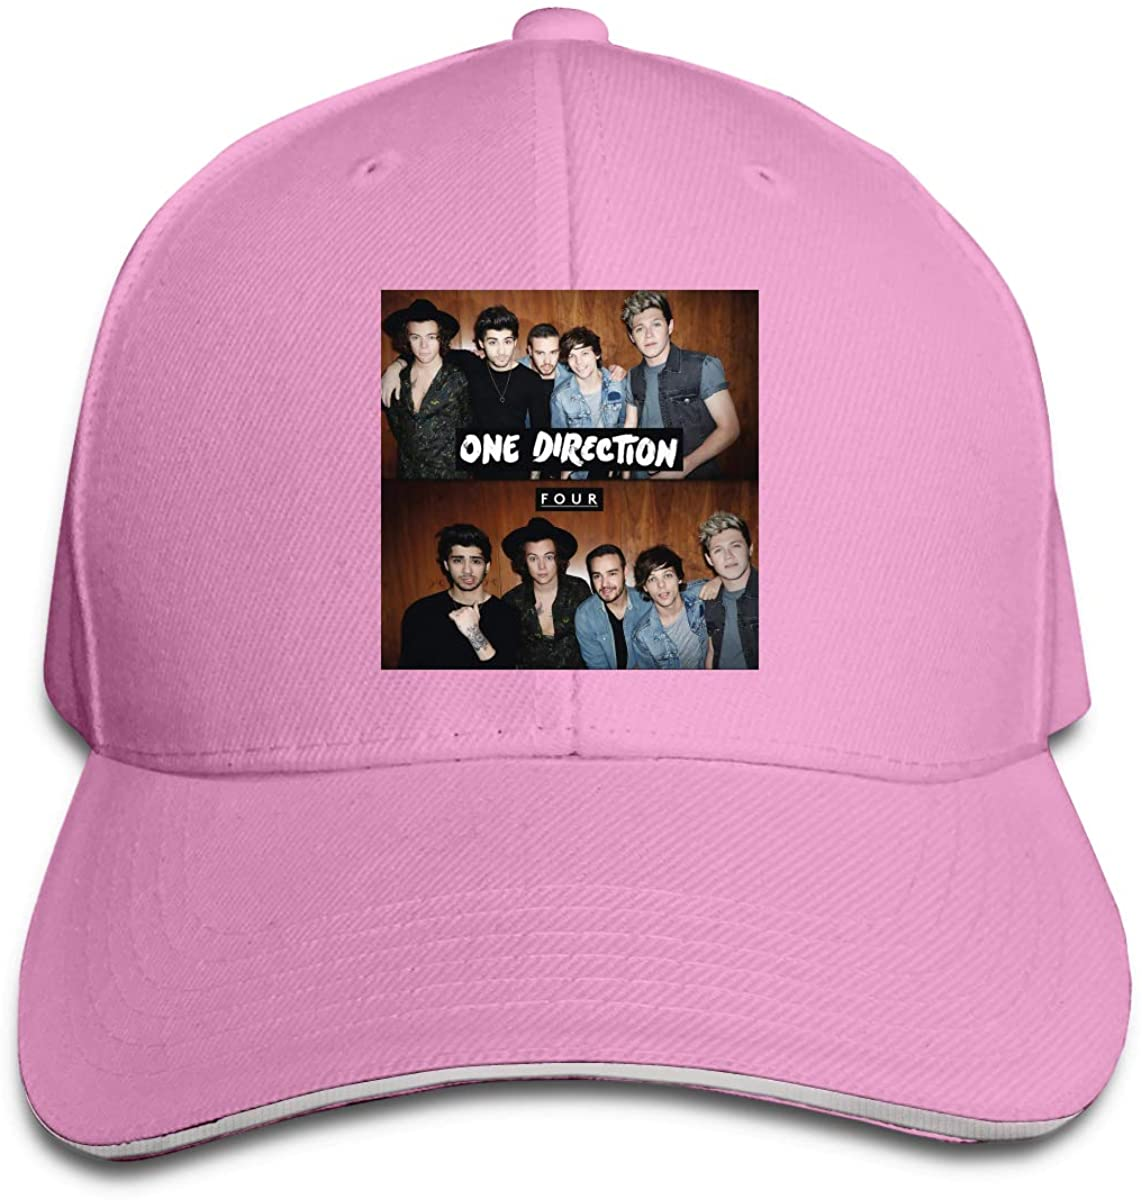 One Direction Four Unisex One Direction Four Comfortable, Breathable, Handsome Sunbonnet